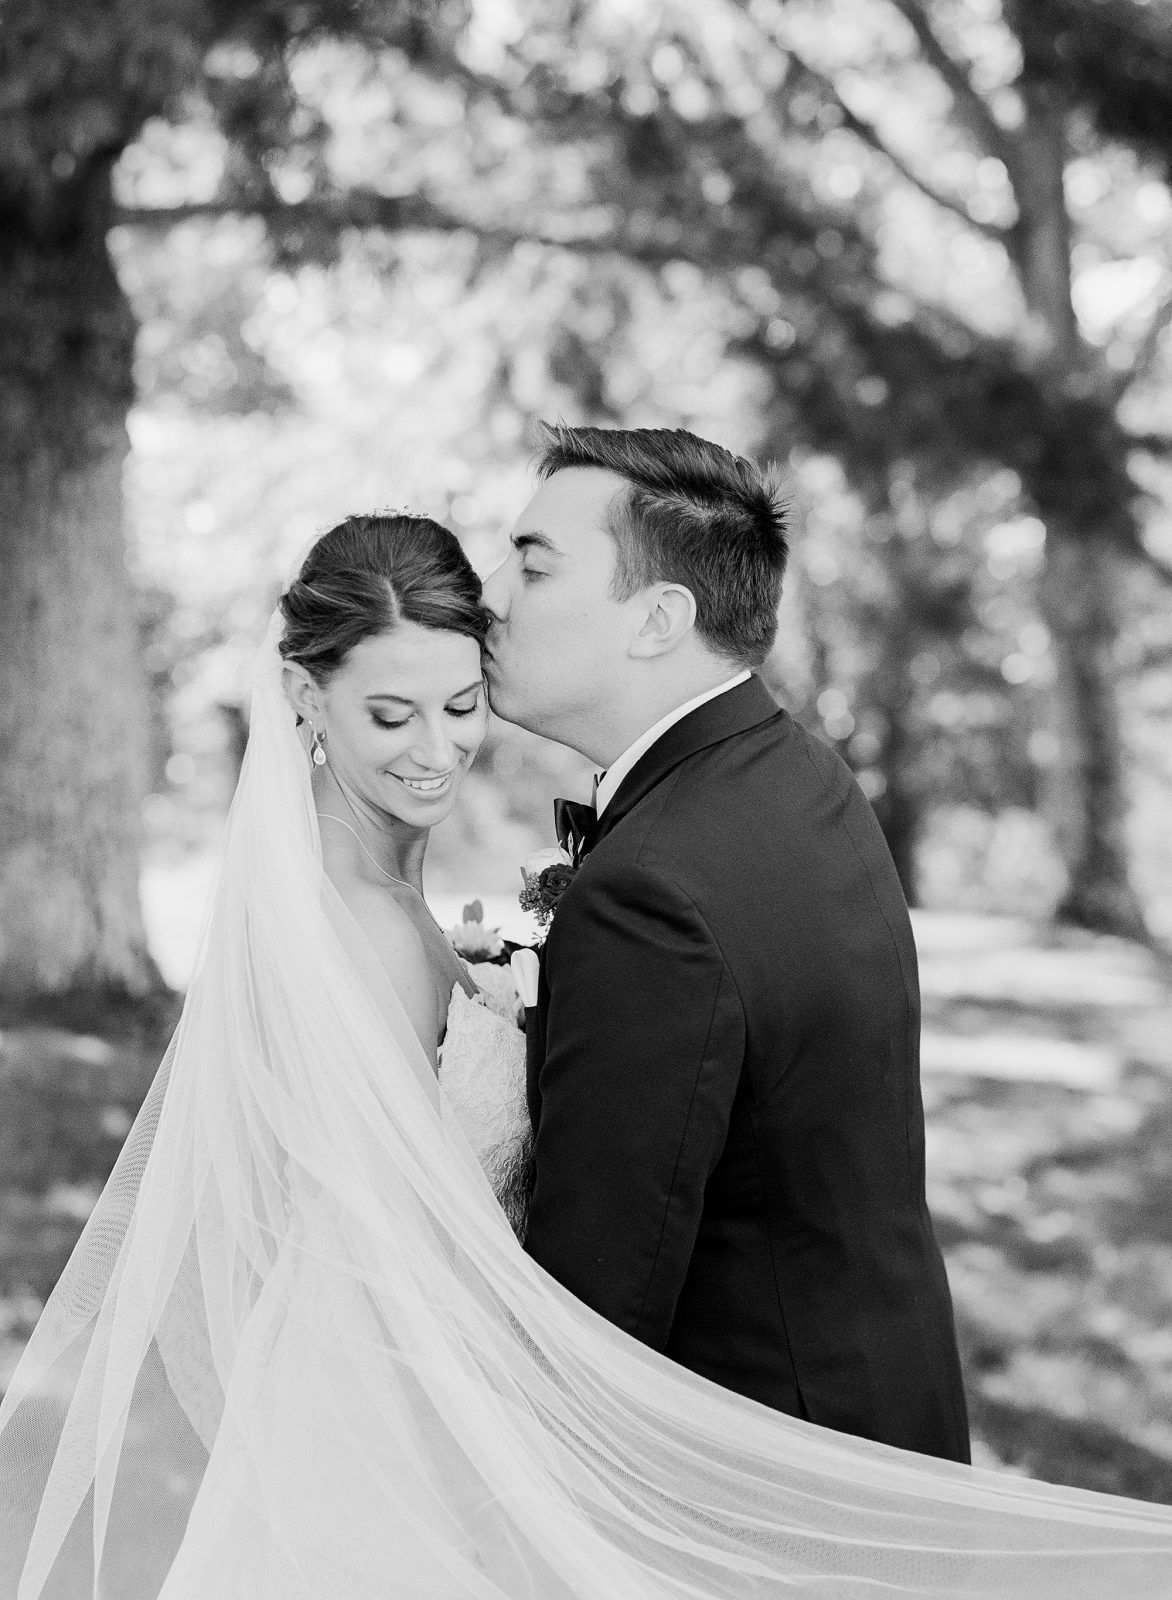 Classic black and white wedding portrait on film at white oaks barn by carrie joy photography